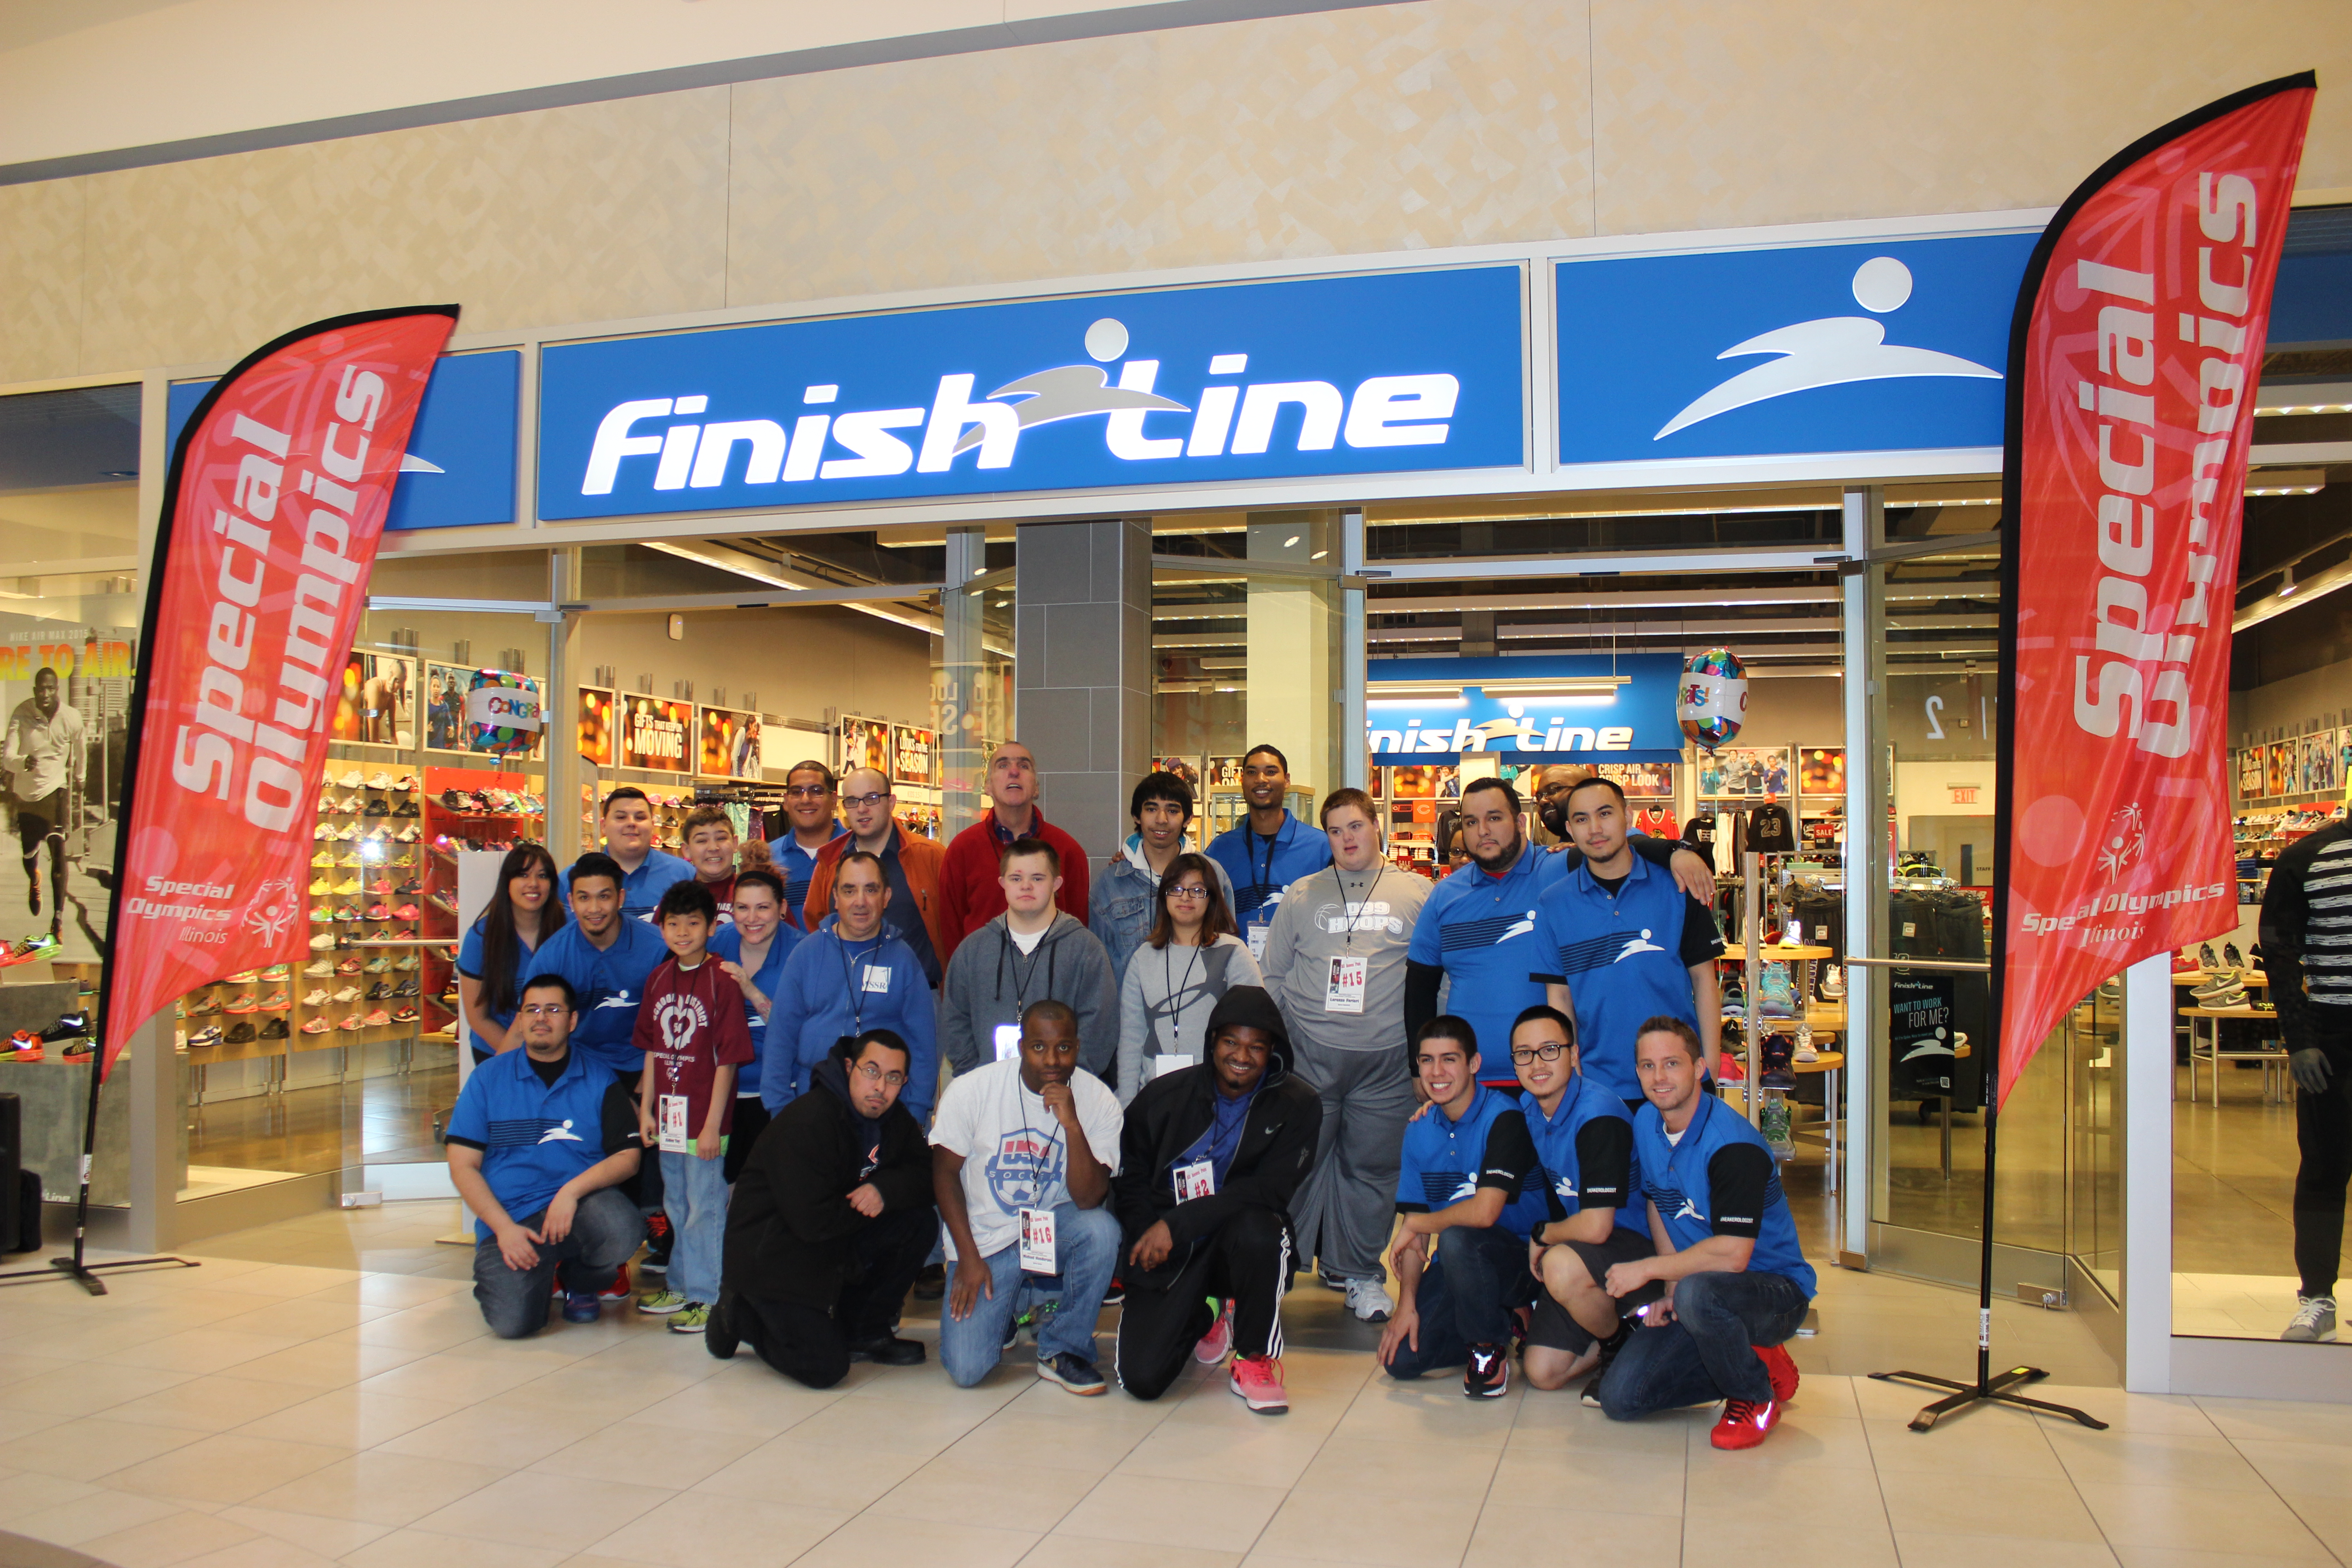 20 athletes receive new shoes from finish line special olympics